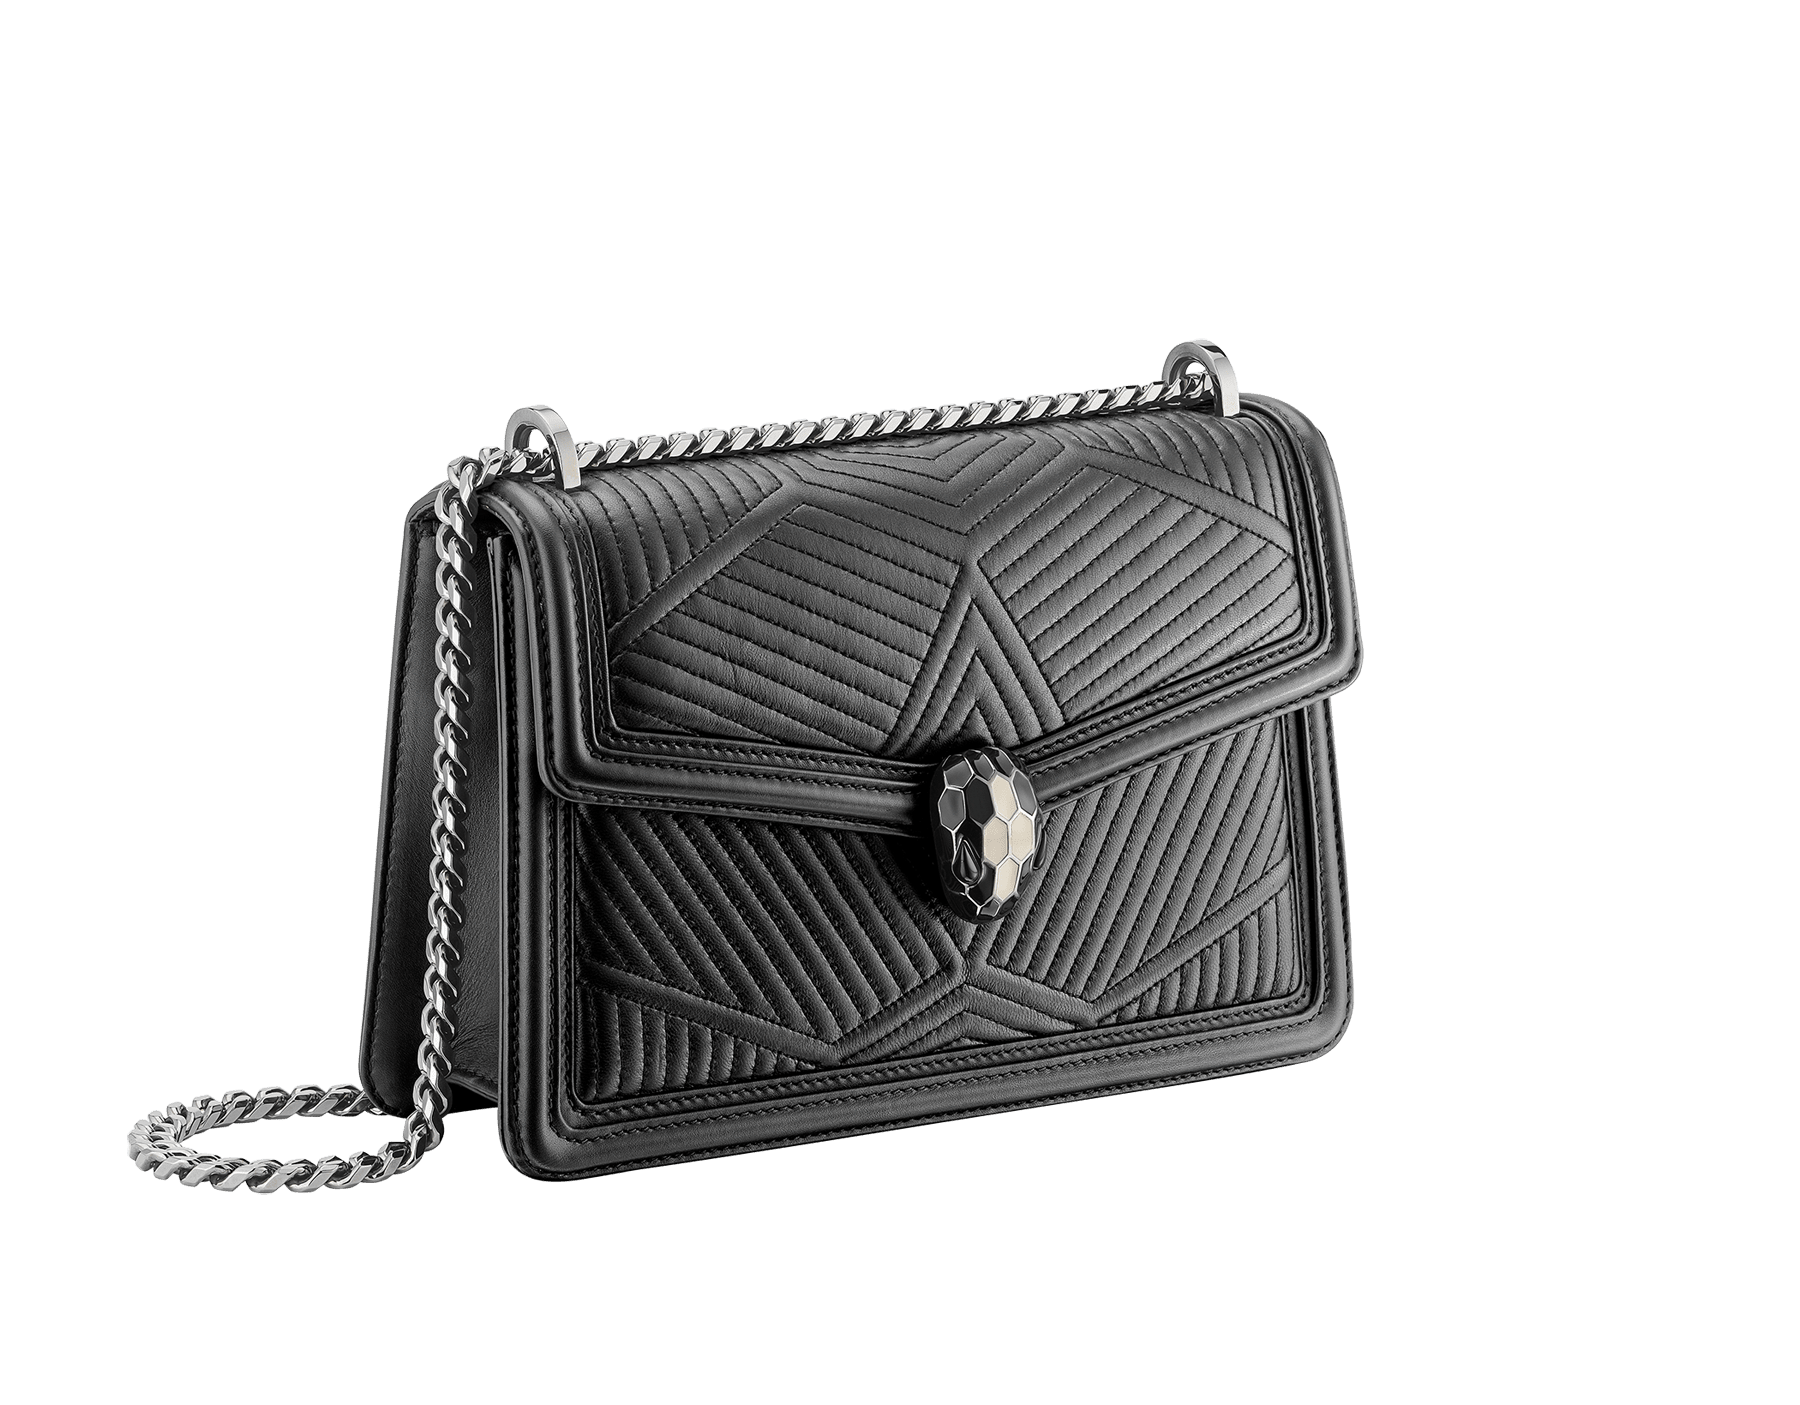 """Serpenti Diamond Blast"" shoulder bag in black quilted nappa leather body and black calf leather frames. Iconic snakehead closure in dark ruthenium plated brass enriched with black and white enamel and black onyx eyes. 287371 image 3"